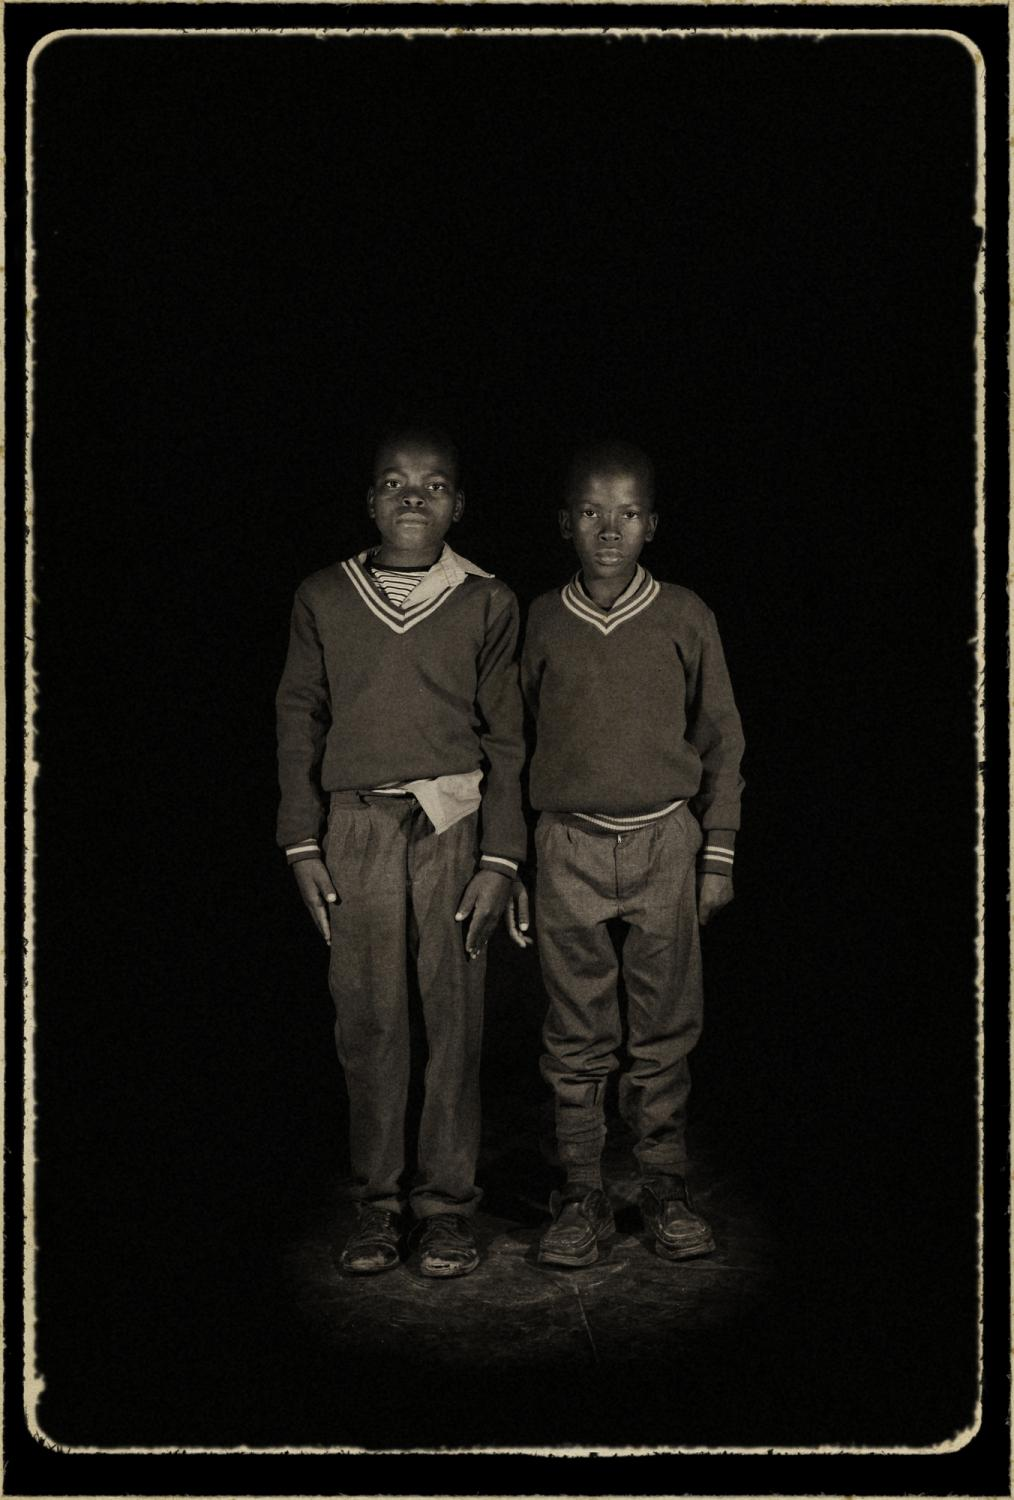 Hosea, Swaziland. ¨Orphans¨ Portrait of orphaned Mbhamali Sibisiso 13 years old, with his brother Mbhamali Bongani 9 years old, they live with their aunt. The HIV/AIDS pandemic has affected almost every family in the Kingdom of Swaziland. The Country has the highest percentage of HIV-positive people in the world, with nearly 36% of those between the ages of 15 and 49 living with HIV. Of extreme concern is the issue of orphans in a Country of just more than one million people an estimated 220,000 people are living with HIV. More than 70,000 children have been orphaned by AIDS. According to UNADIS, the number of orphans will continue to grow at an alarming rate with a projection of 120,000 orphans in the Country by 2010. (UNAIDS: 2006 Report on the global AIDS epidemic).